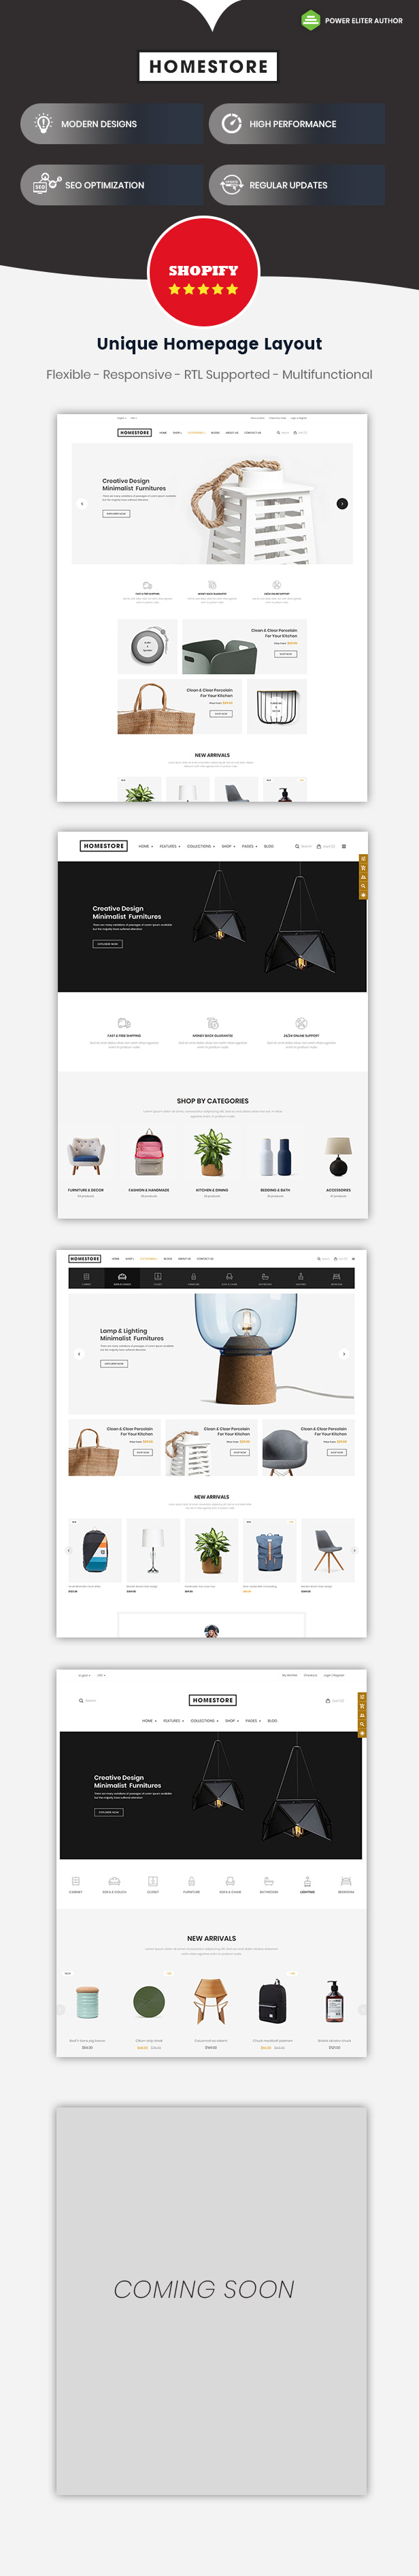 HomeStore -  Multipurpose Responsive Shopify Theme with Sections